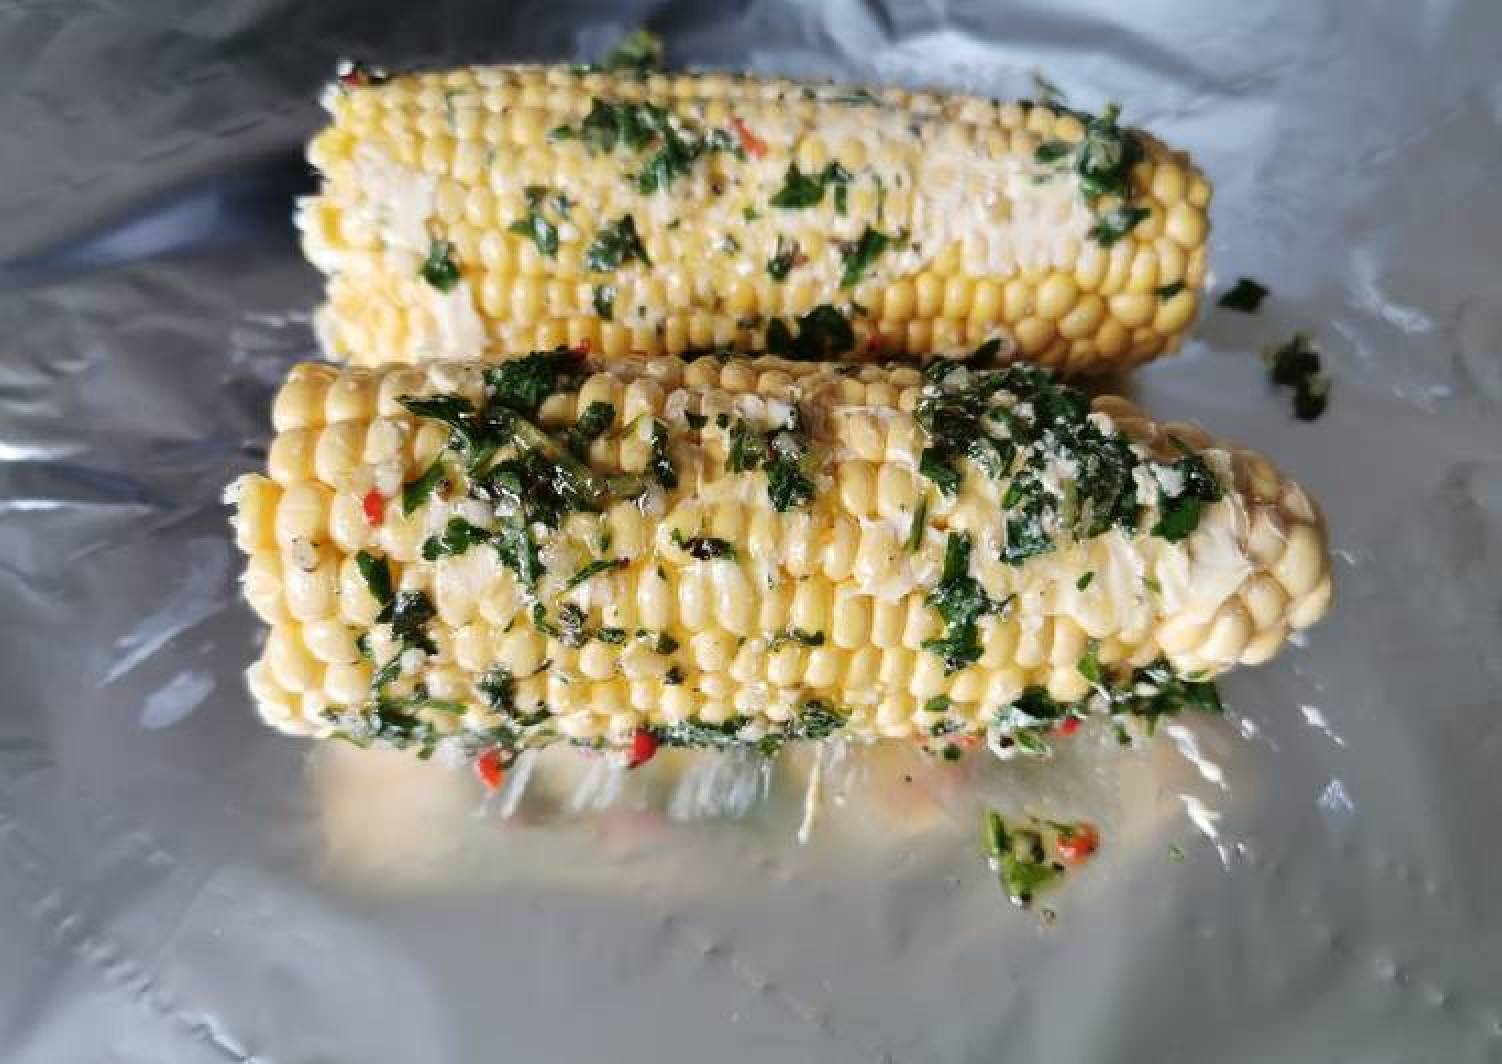 BBQ Corn on the cob 🌽